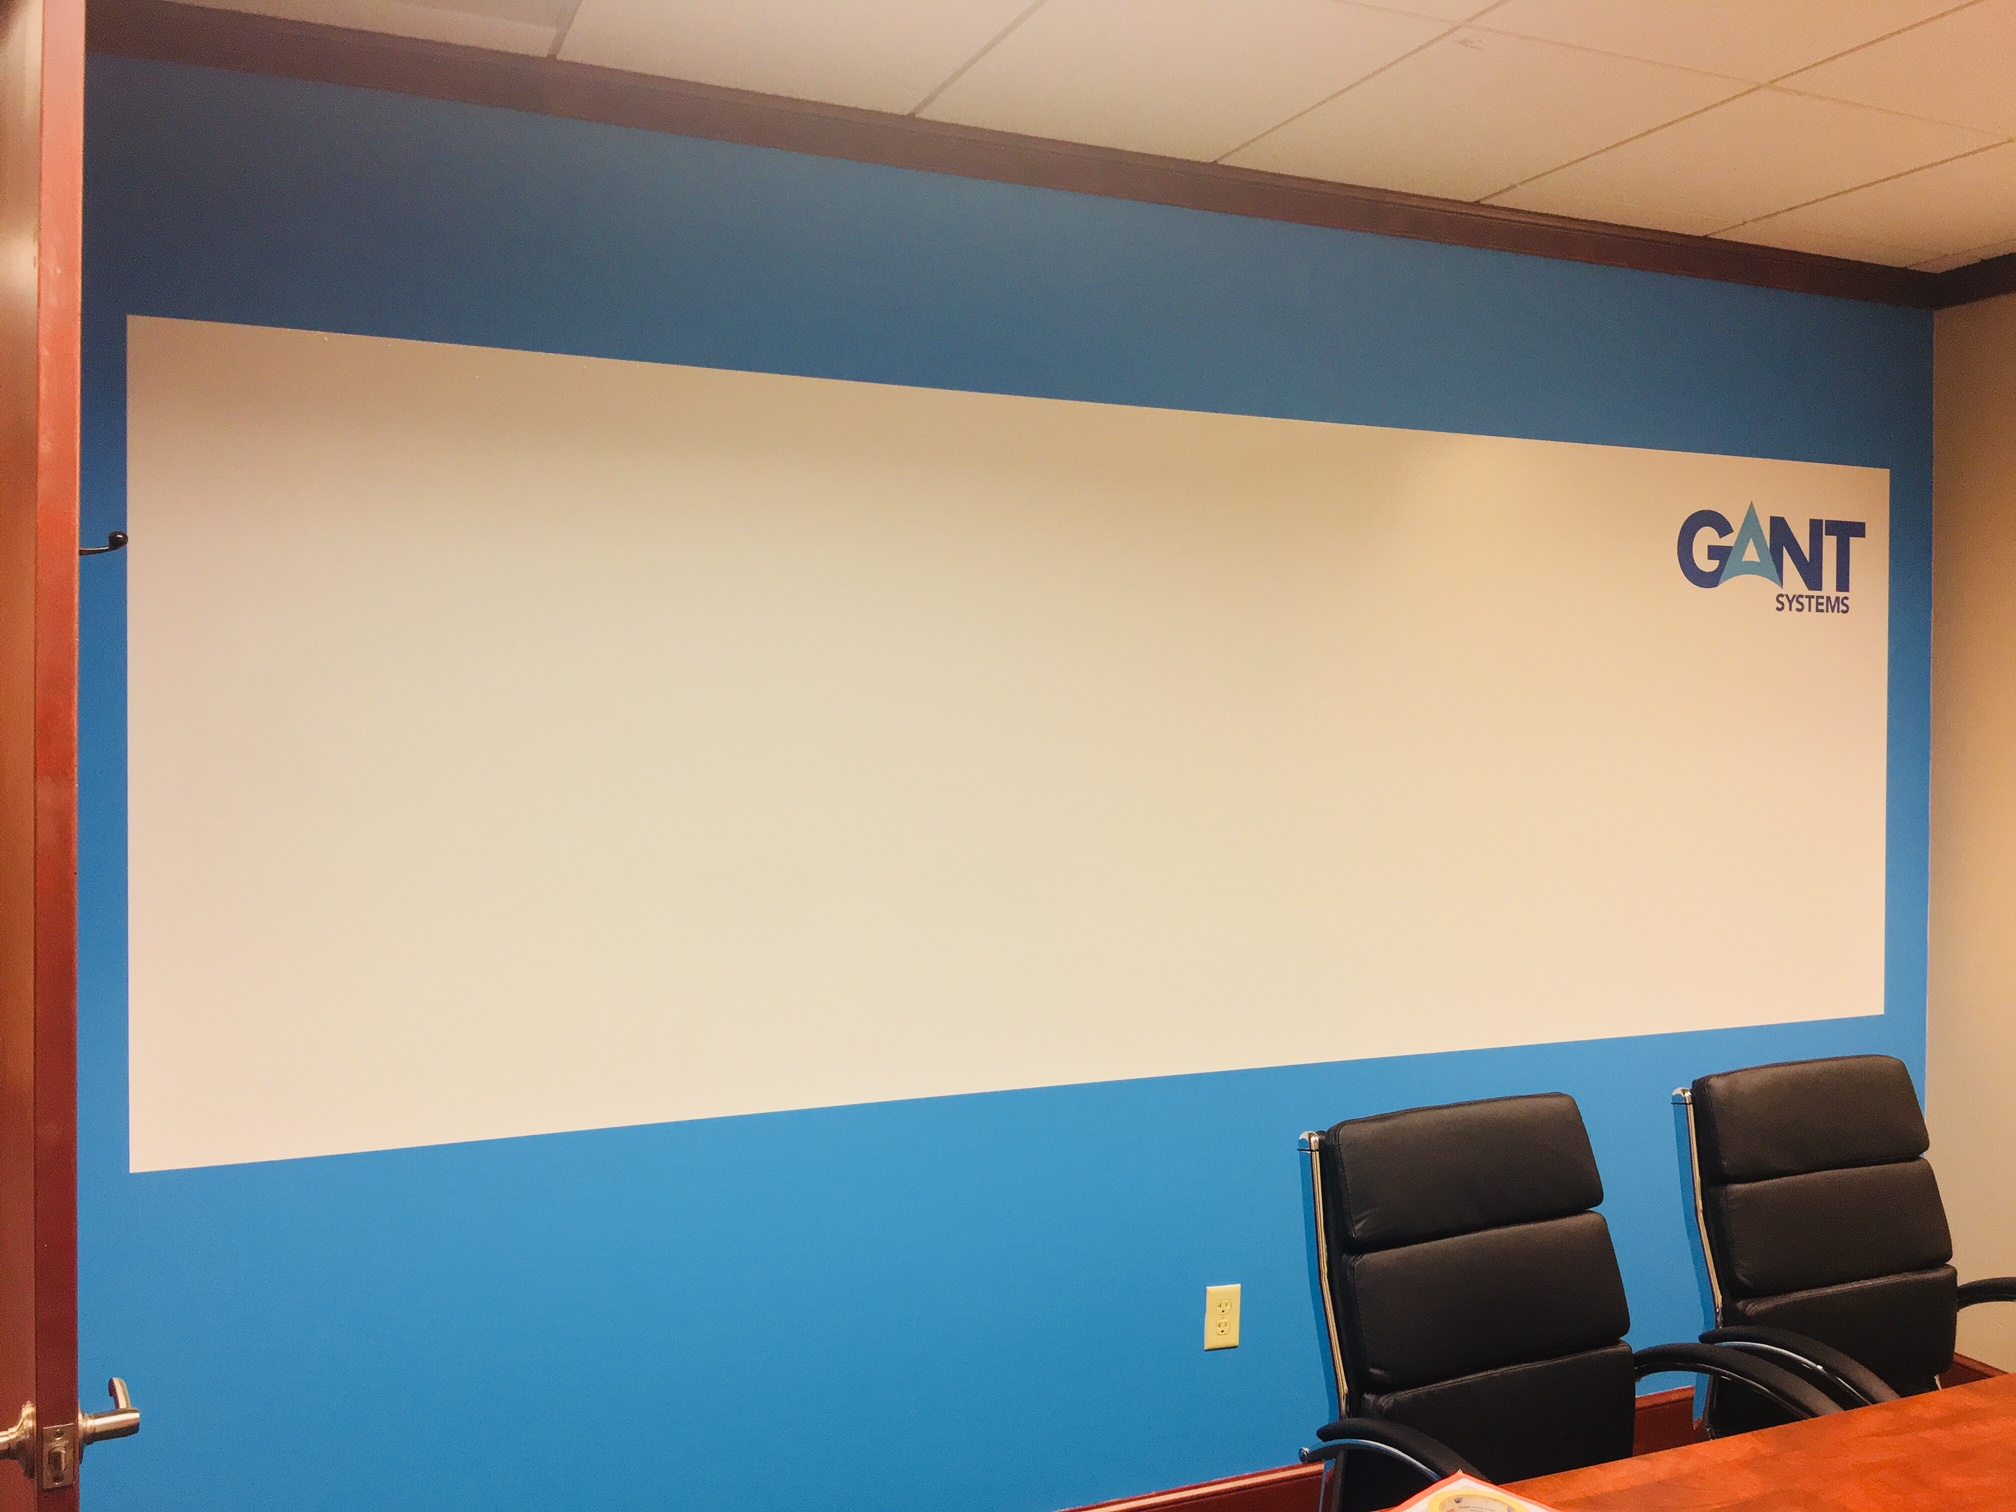 Gant Systems Graphic Whiteboard